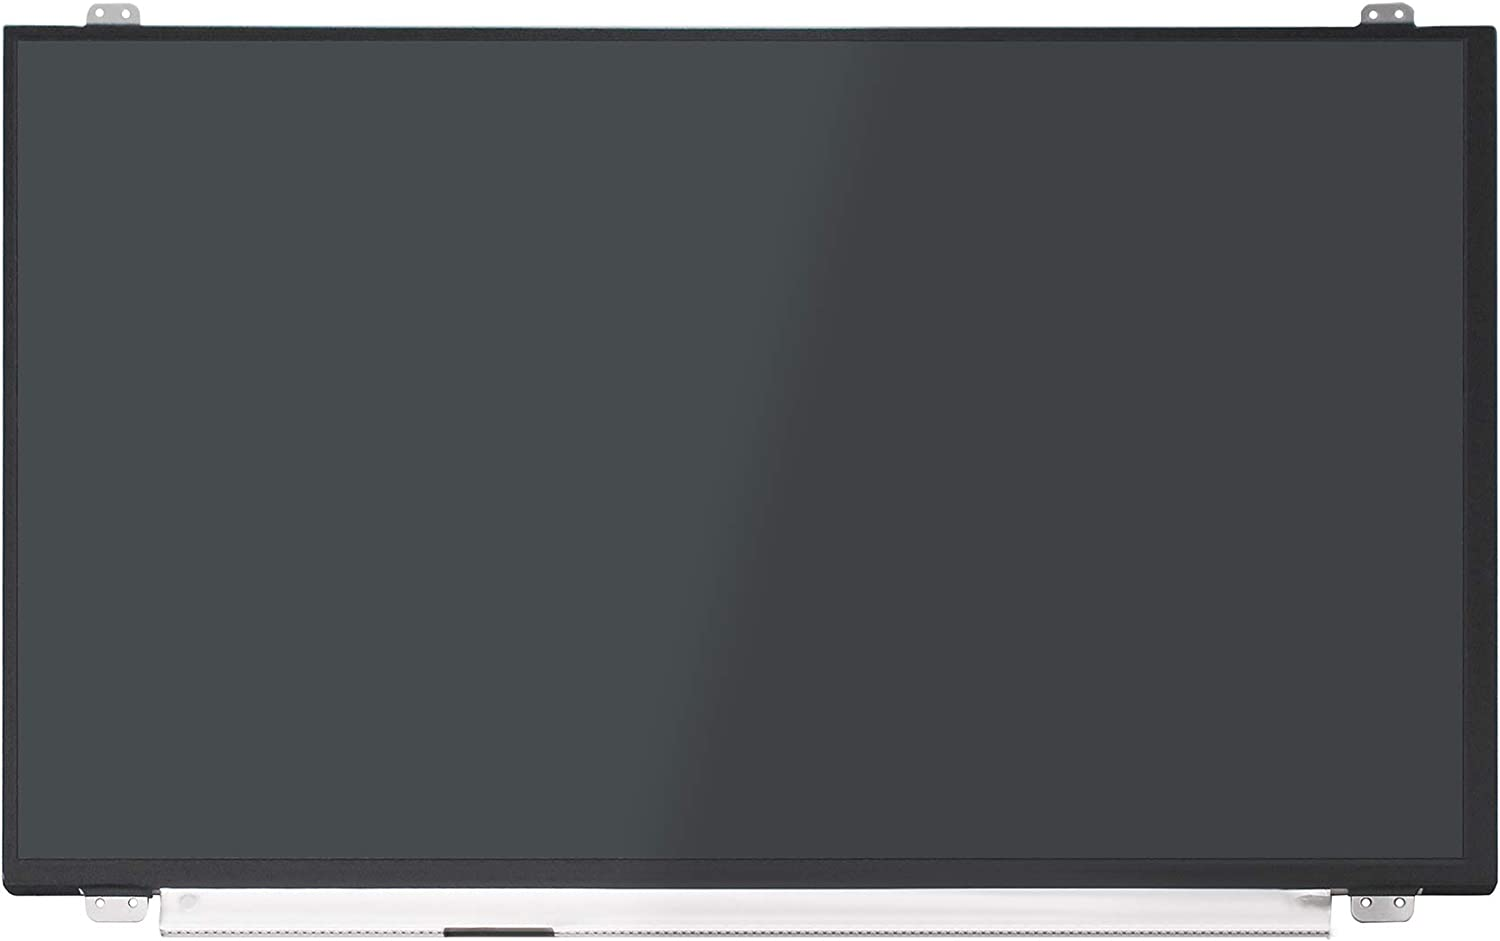 LCDOLED Replacement 15.6 inches 120Hz 94% NTSC FHD 1080P LCD Display Screen Panel for Acer Nitro 5 AN515-51 Series AN515-51-55WL AN515-51-75A2 AN515-51-53W5 AN515-51-5594 AN515-51-56U0 AN515-51-70V4